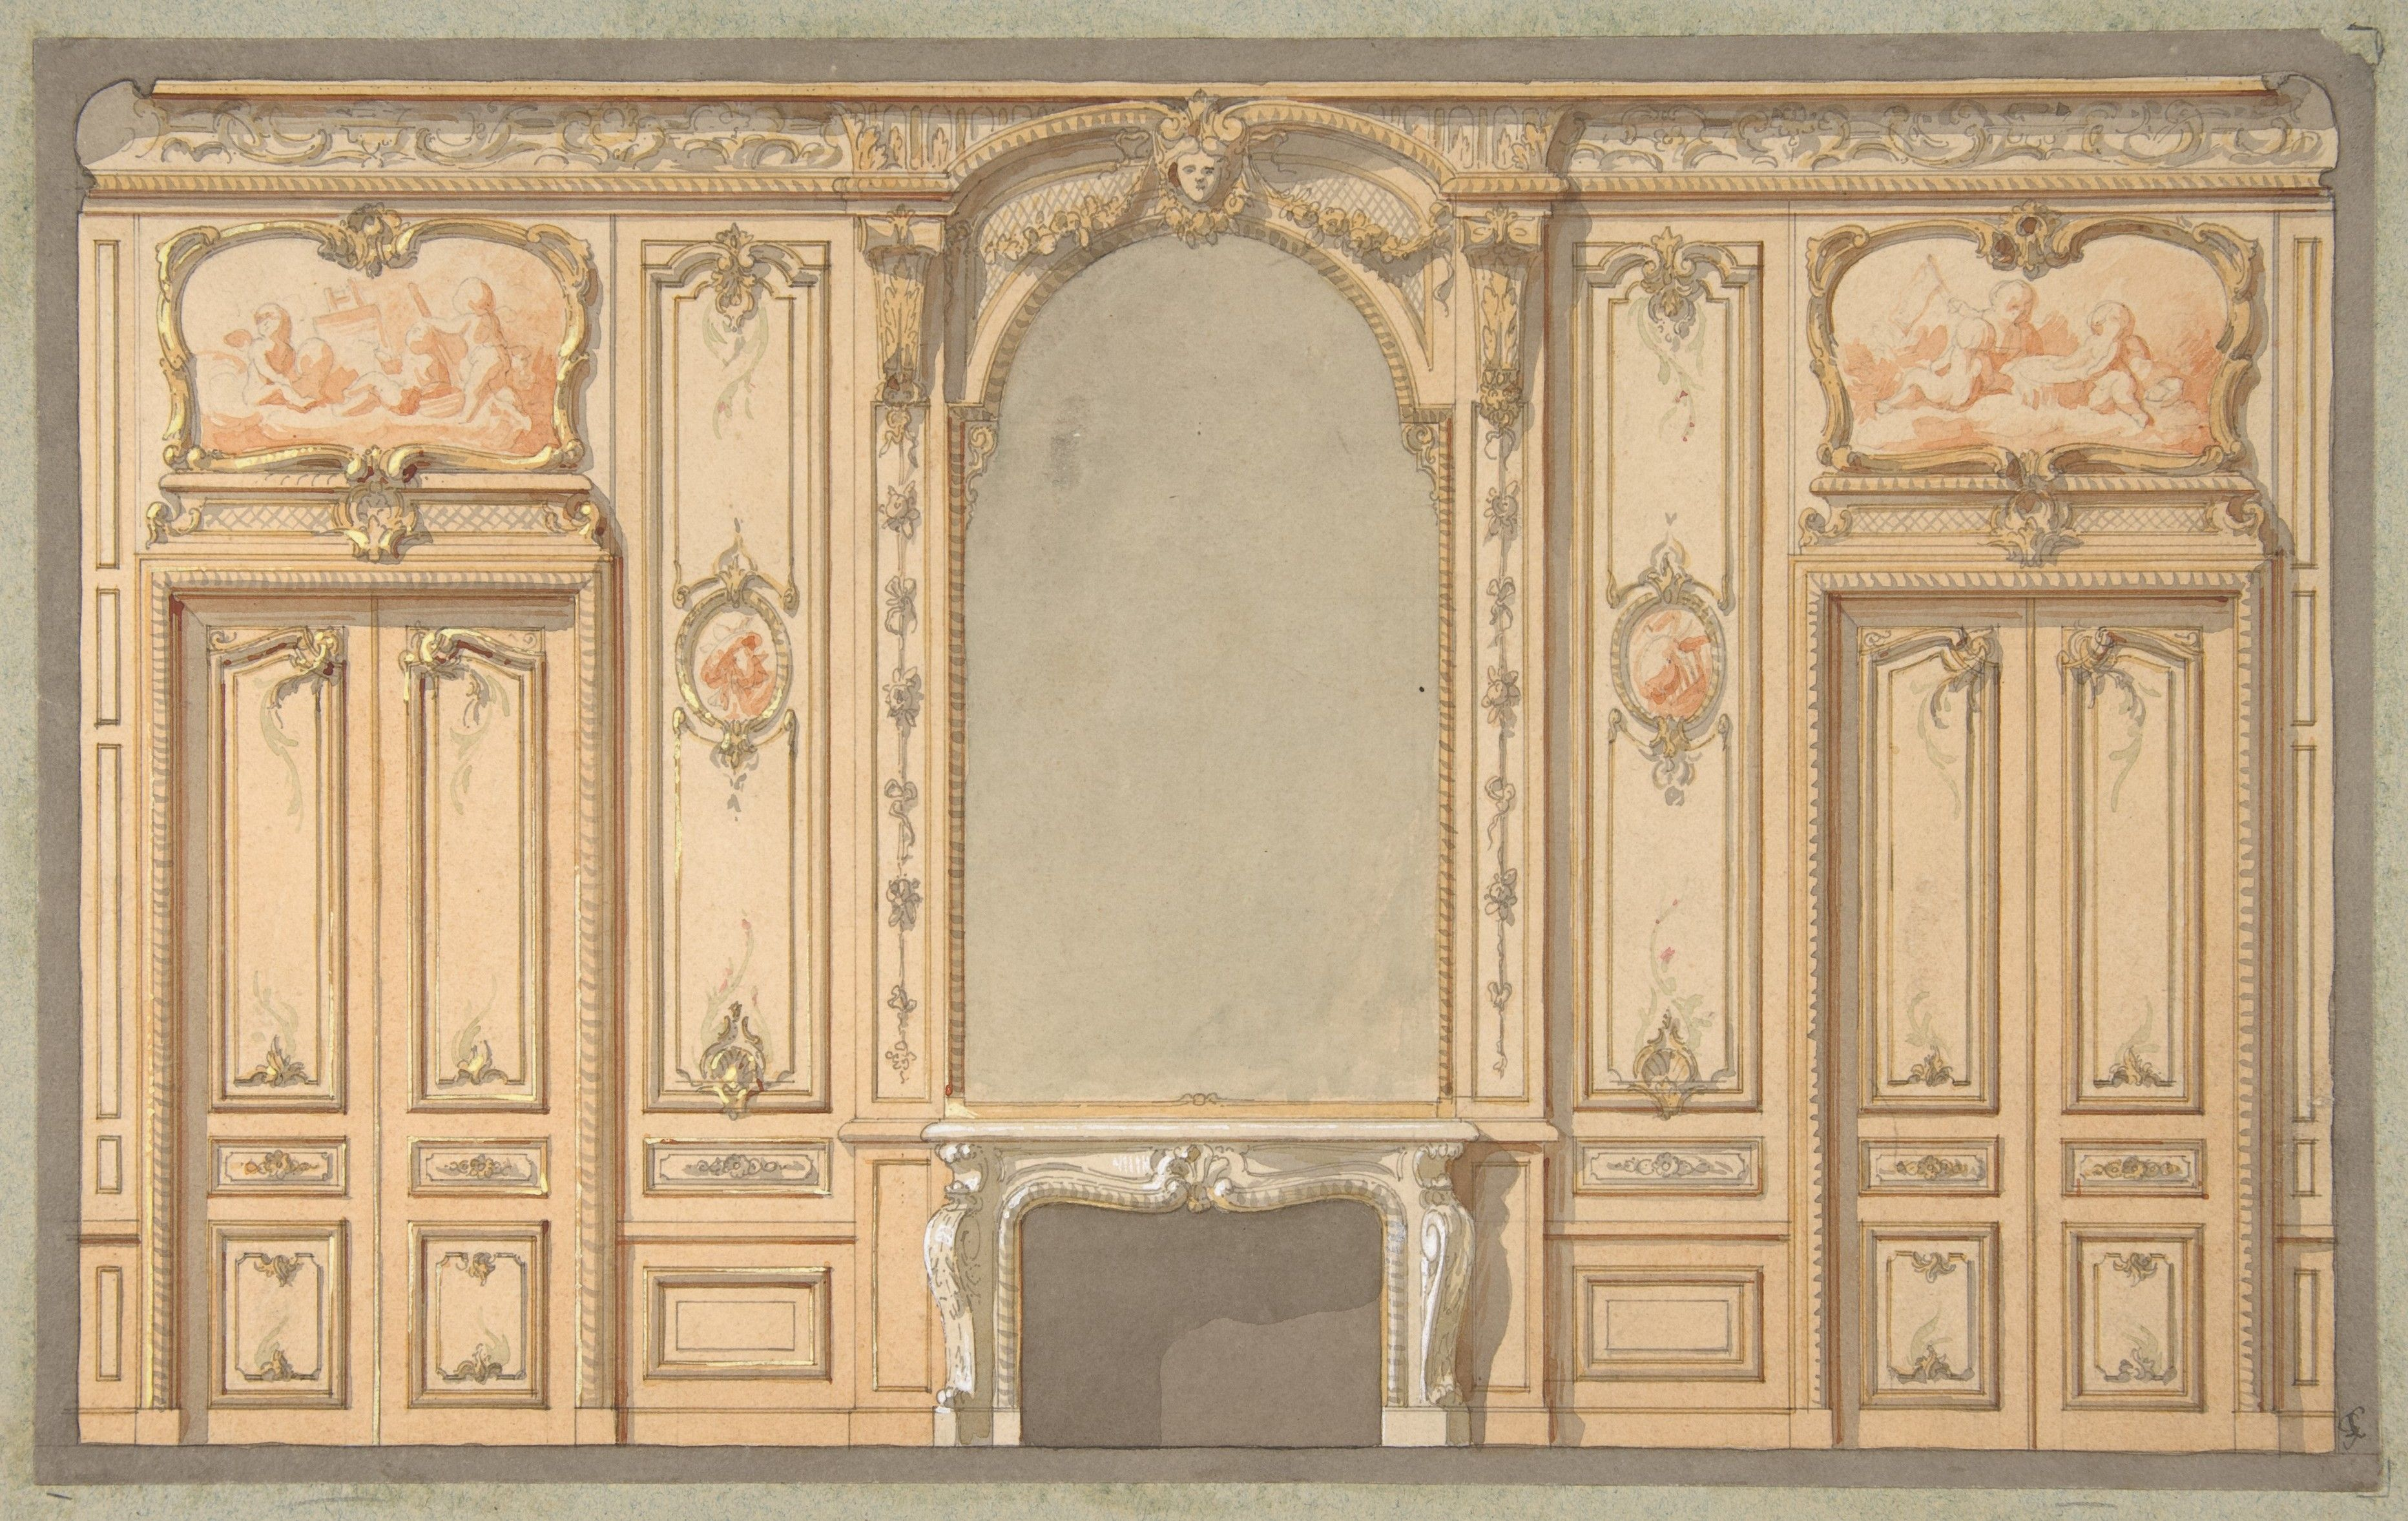 Jules-Edmond-Charles Lachaise | Design for wall panels, mirror ...